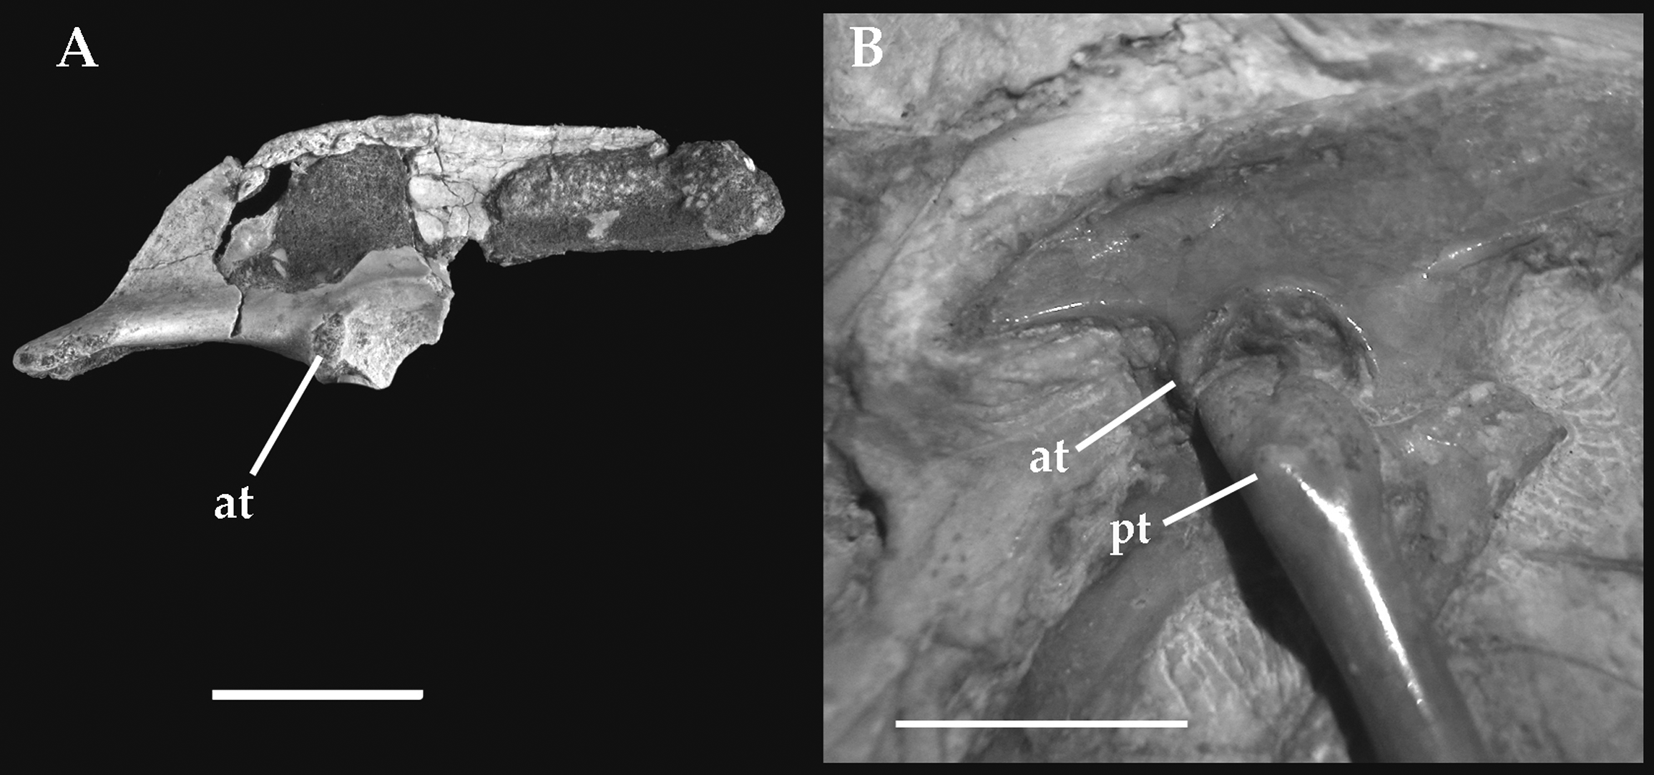 THE PHYLOGENETIC POSITION OF UNENLAGIIDAE 123 Fig. 3 Right pelvic girdle of: A, Buitreraptor gonzalezorum (MPCA, 245; holotype); B, Archaeopteryx lithographica (HMN, 1880). Scale bar 1 cm.